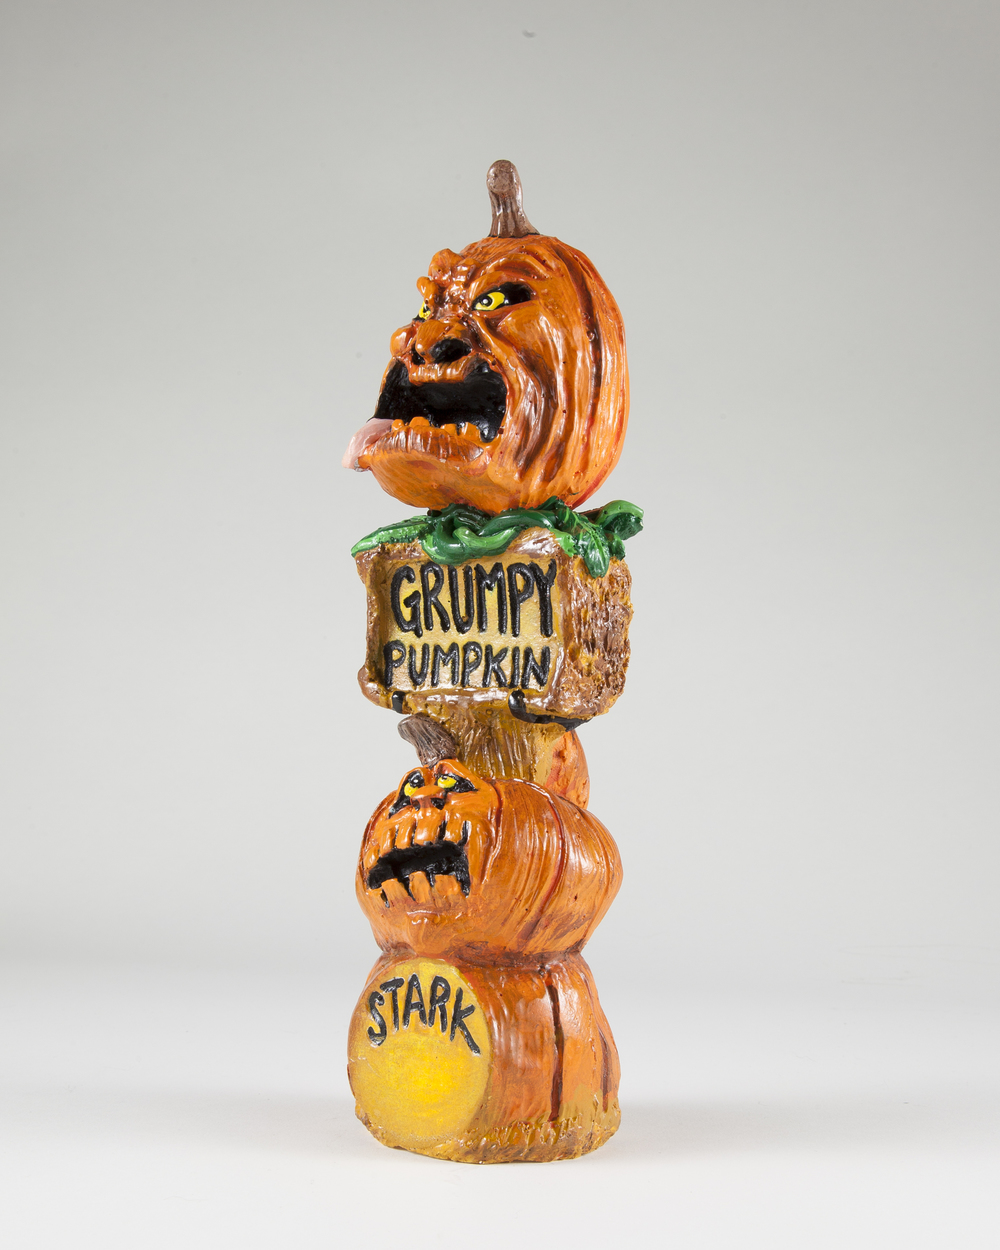 Grumpy Pumpkin (Retired Tap)